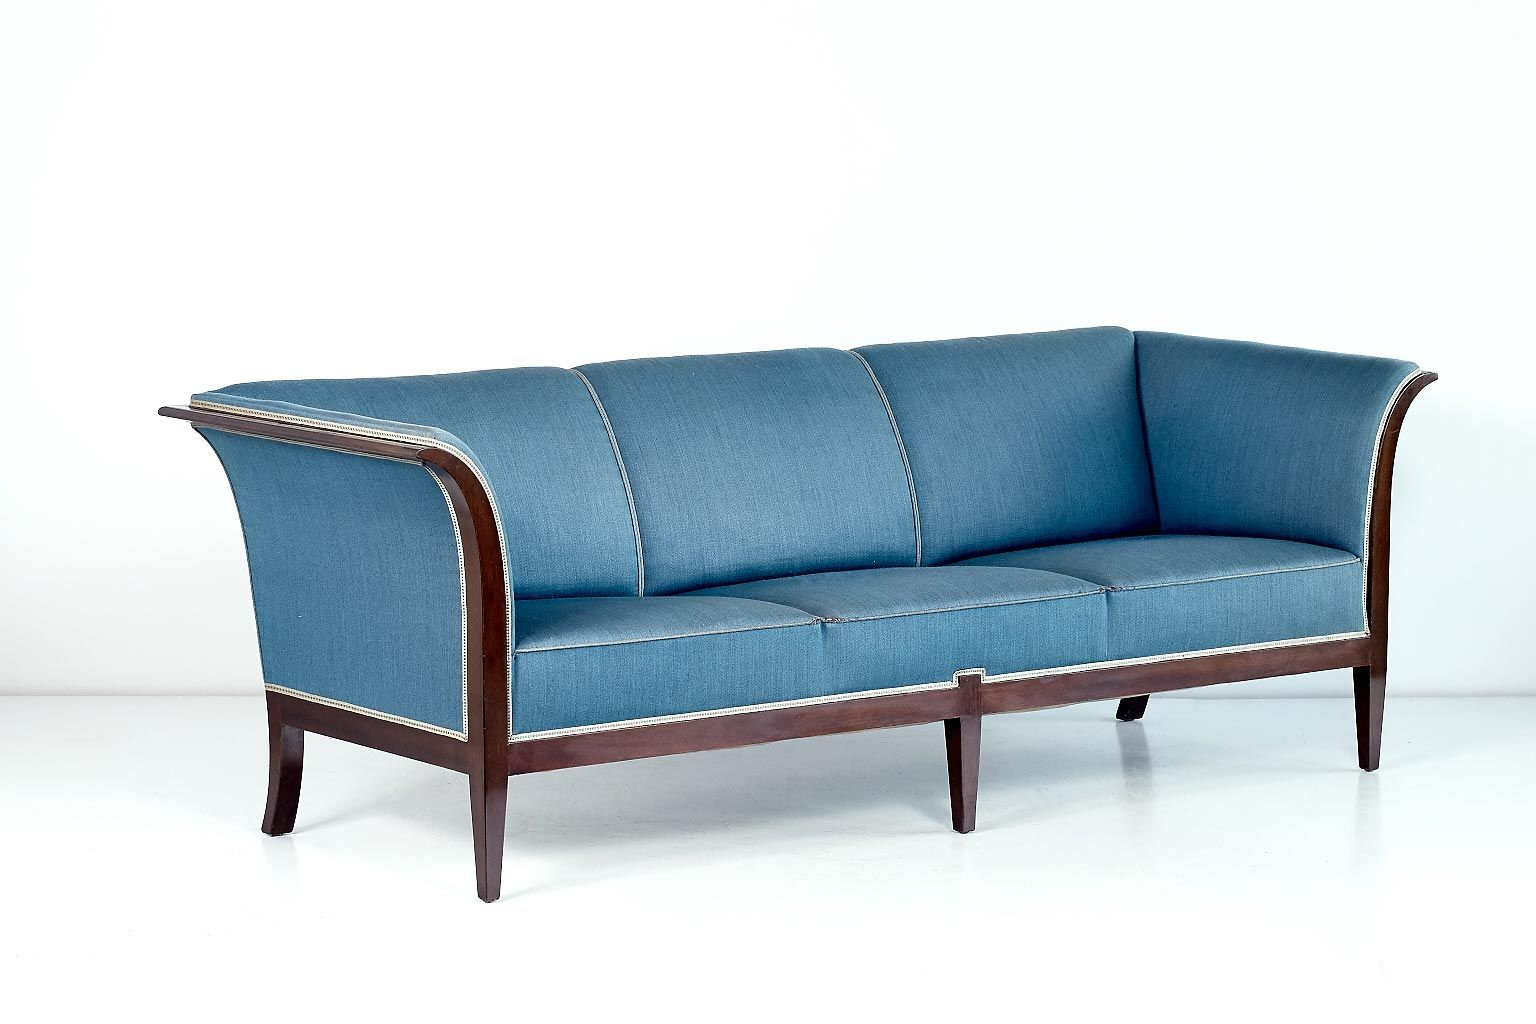 a sofa in the forties vancouver 3 and 2 seater leather recliner mahogany from frits henningsen 1940s for sale at pamono